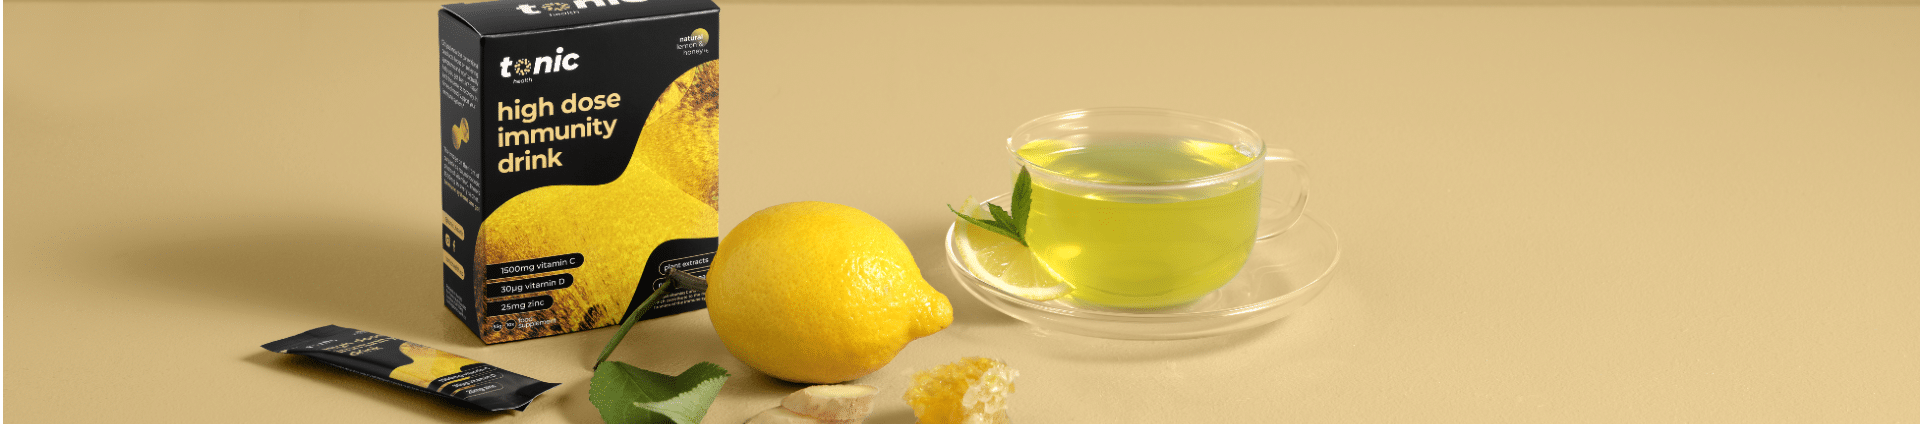 lemon and honey vitamin drink banner